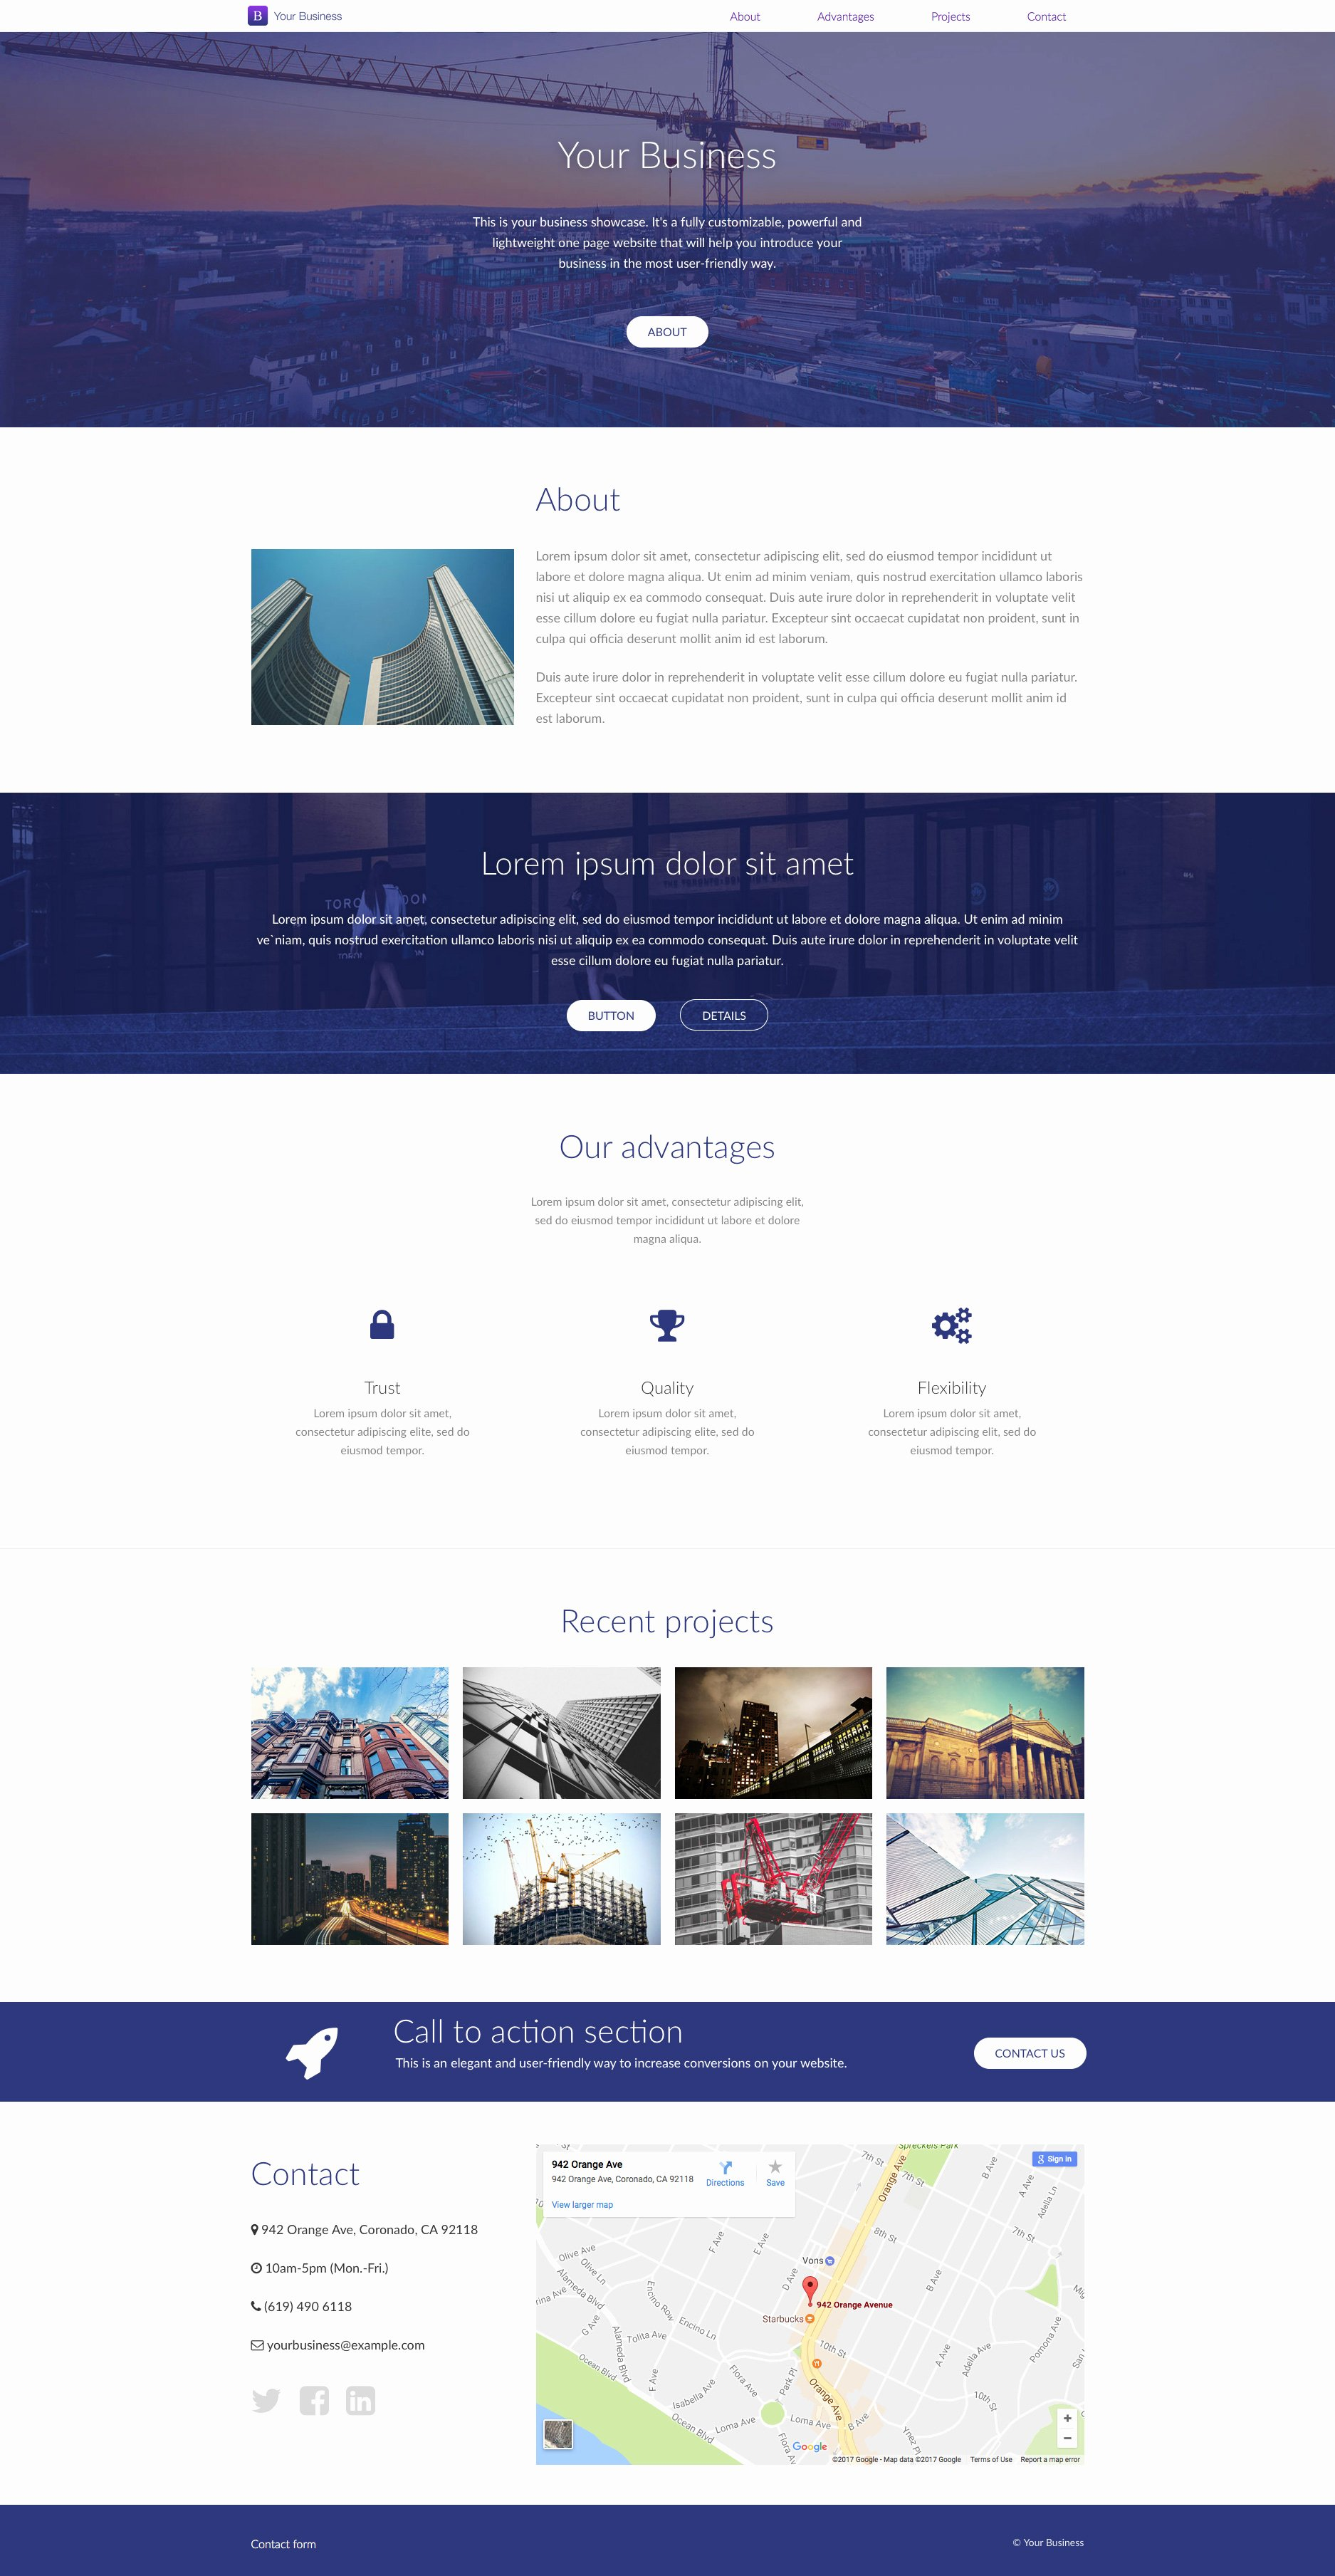 Your Business Free Responsive HTML5 Landing Page Template